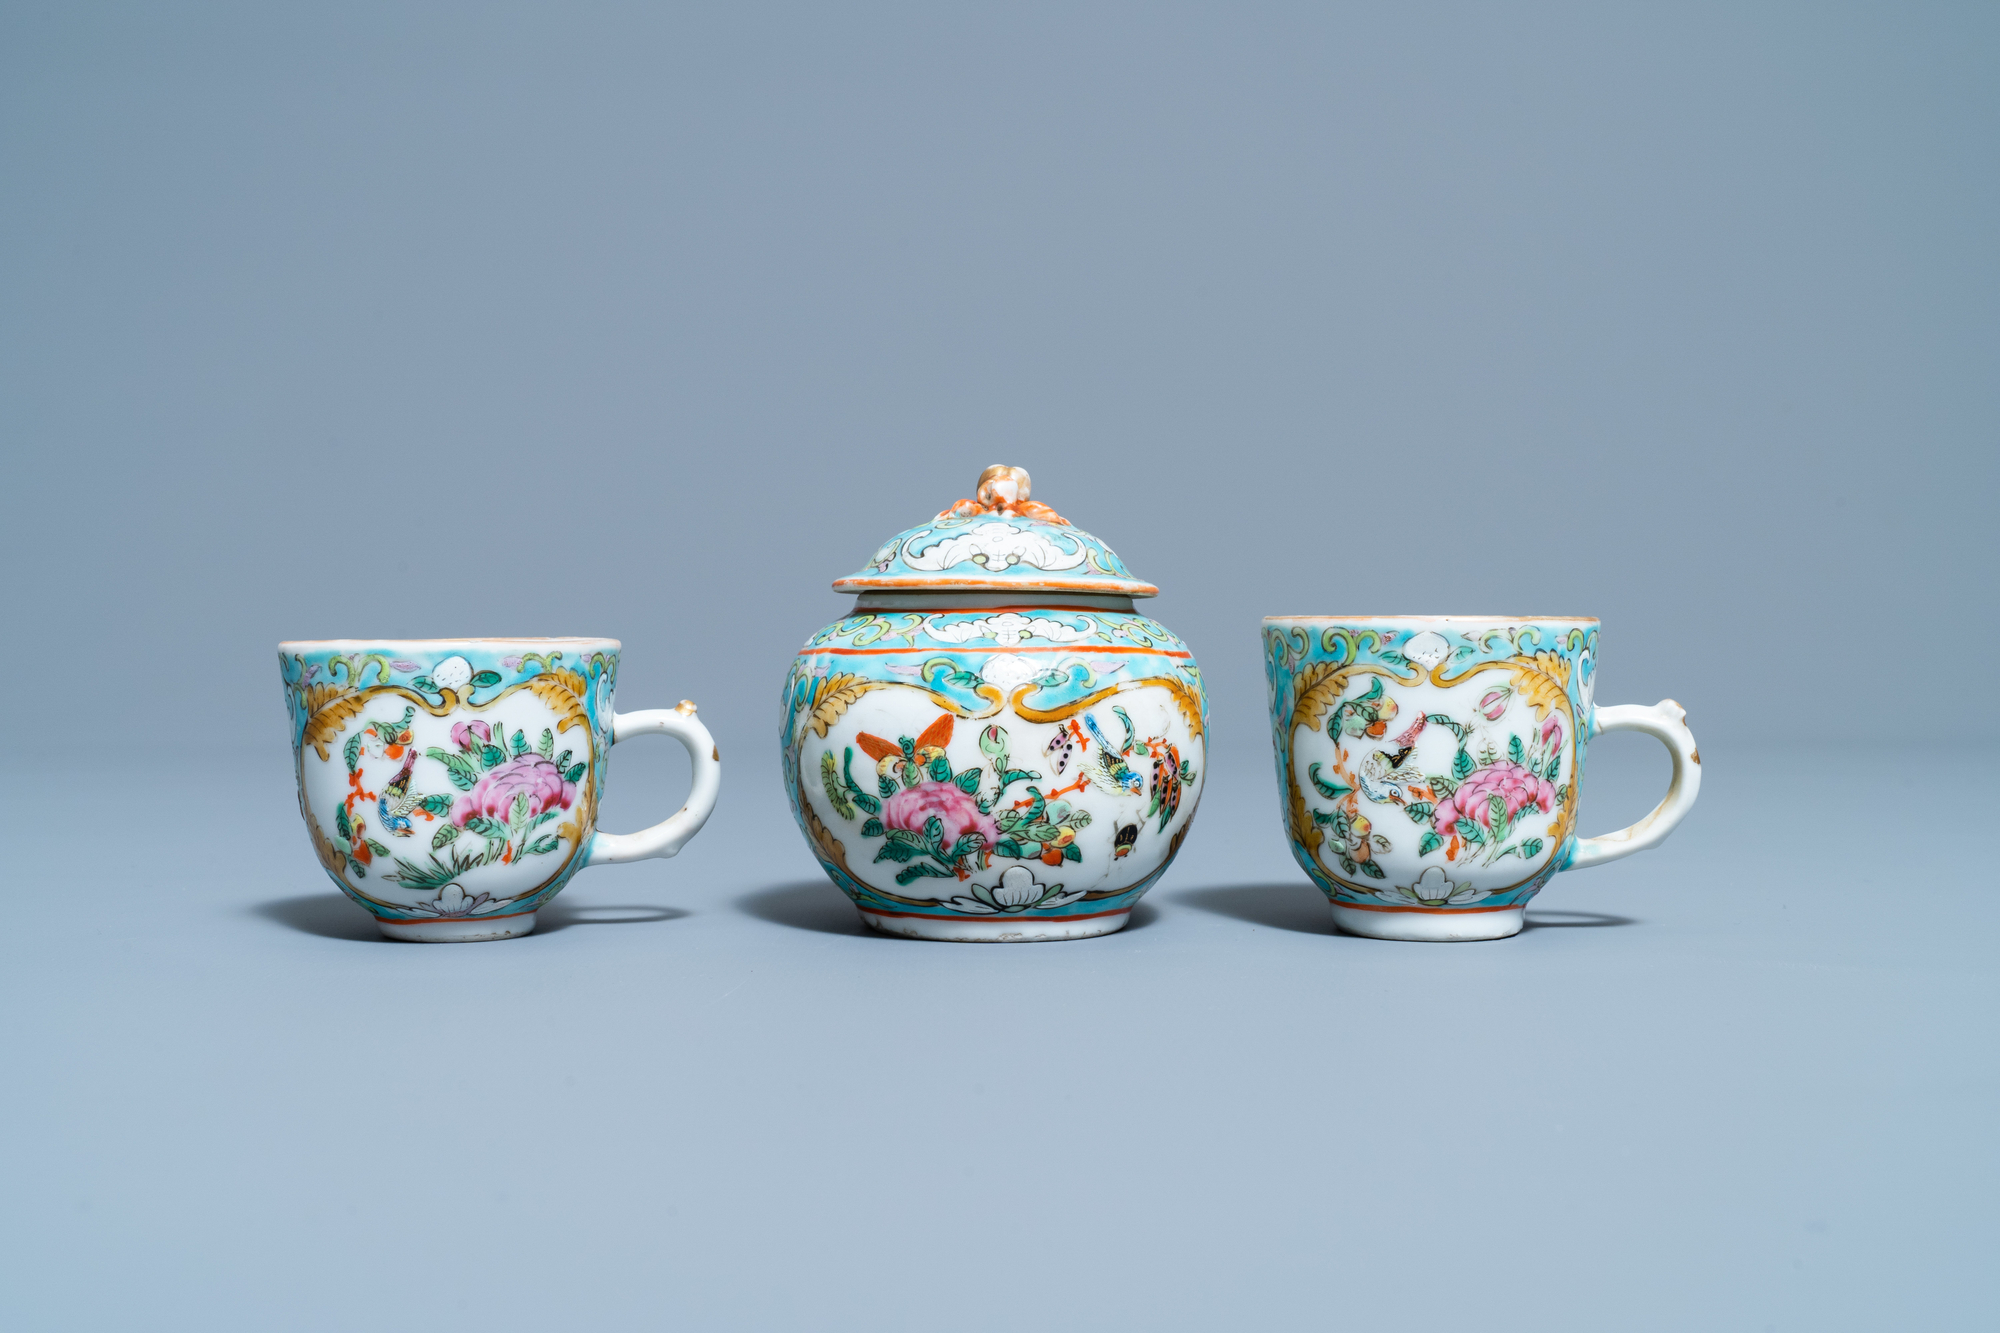 A Chinese famille rose 'tete-a-tete' tea service on tray, 19th C. - Image 6 of 10